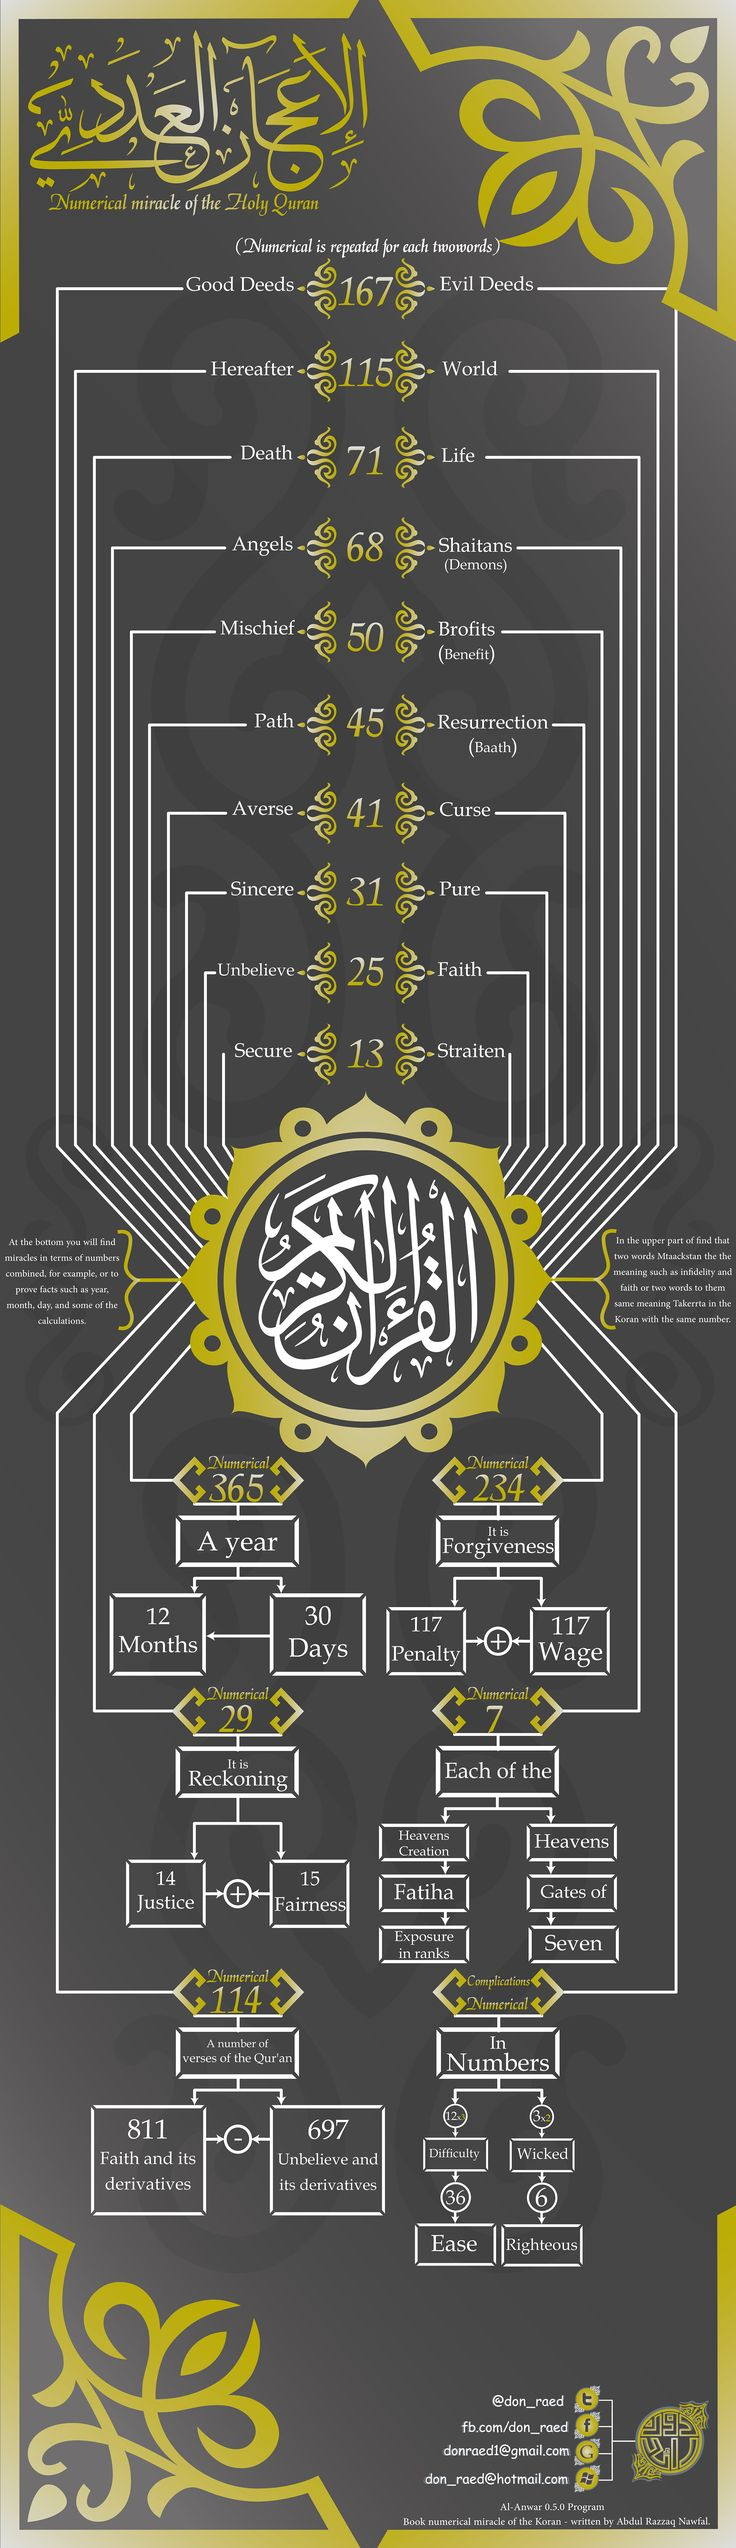 Numerical miracle of the Holy Quran (English) Visual.ly